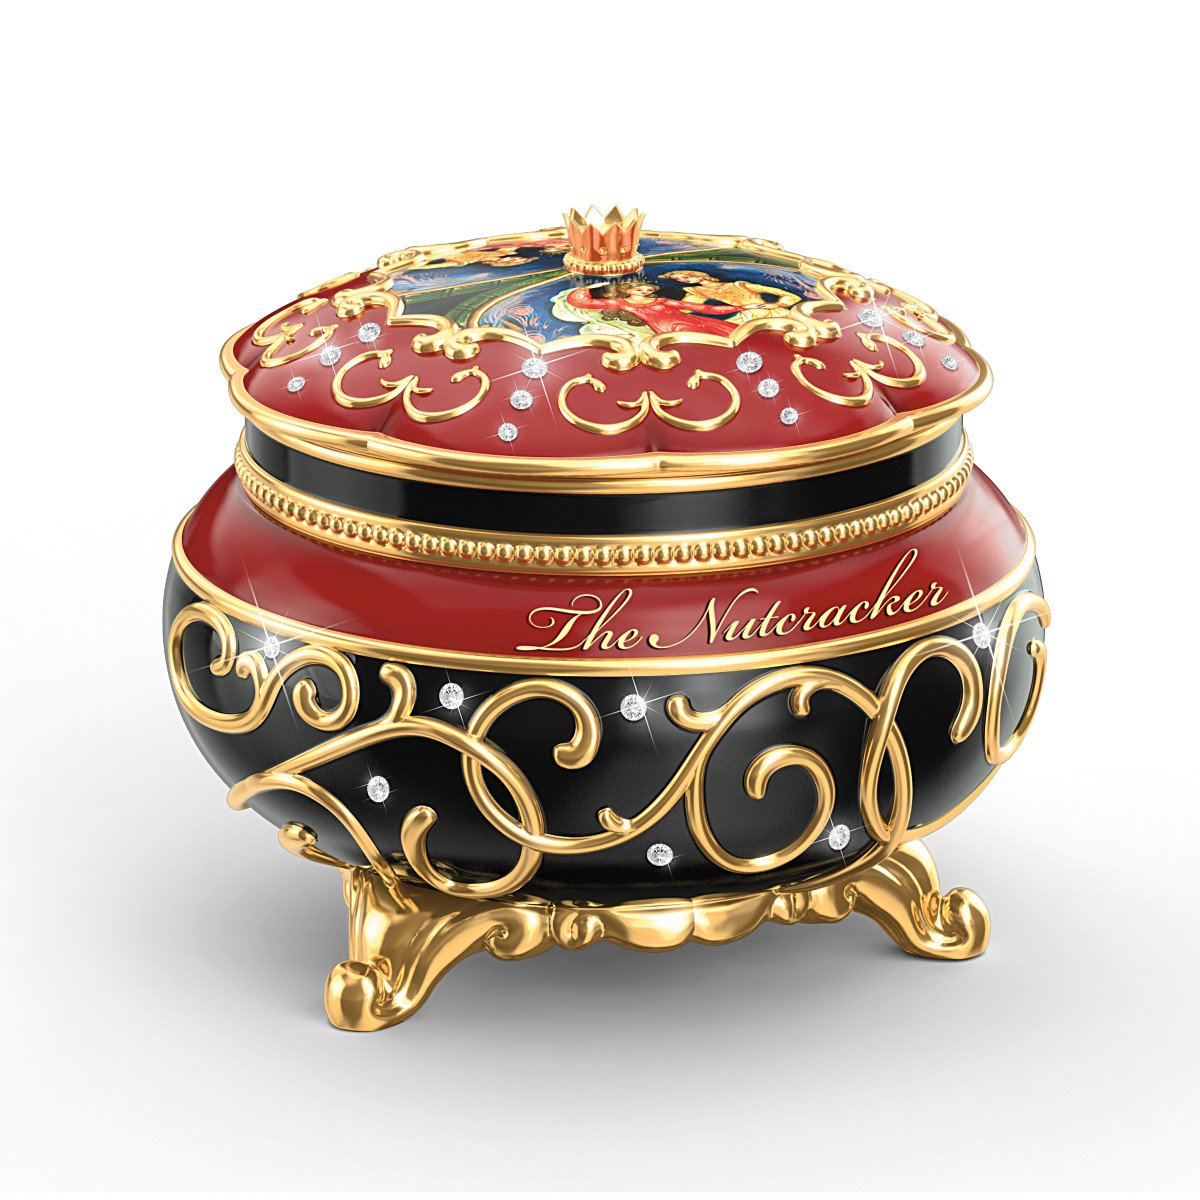 Clara And The Nutcracker Heirloom Porcelain Music Box with Russian Style Art by The Bradford Exchange 4